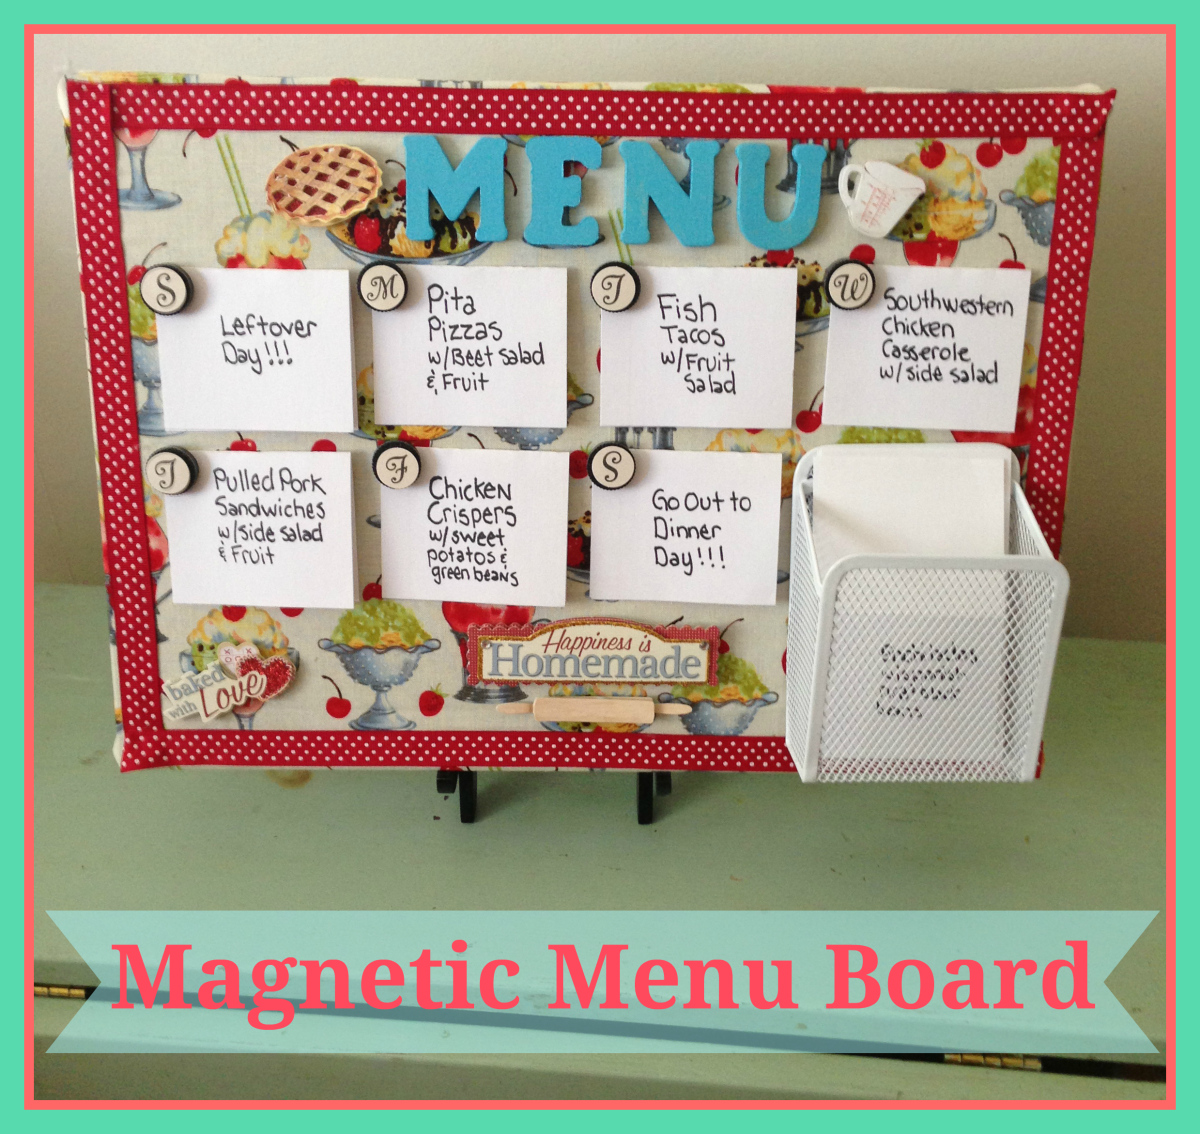 Magnetic Menu Board by Nifty Betty, Featured in The Thinking Closet's Summer 2014 Reader Showcase.